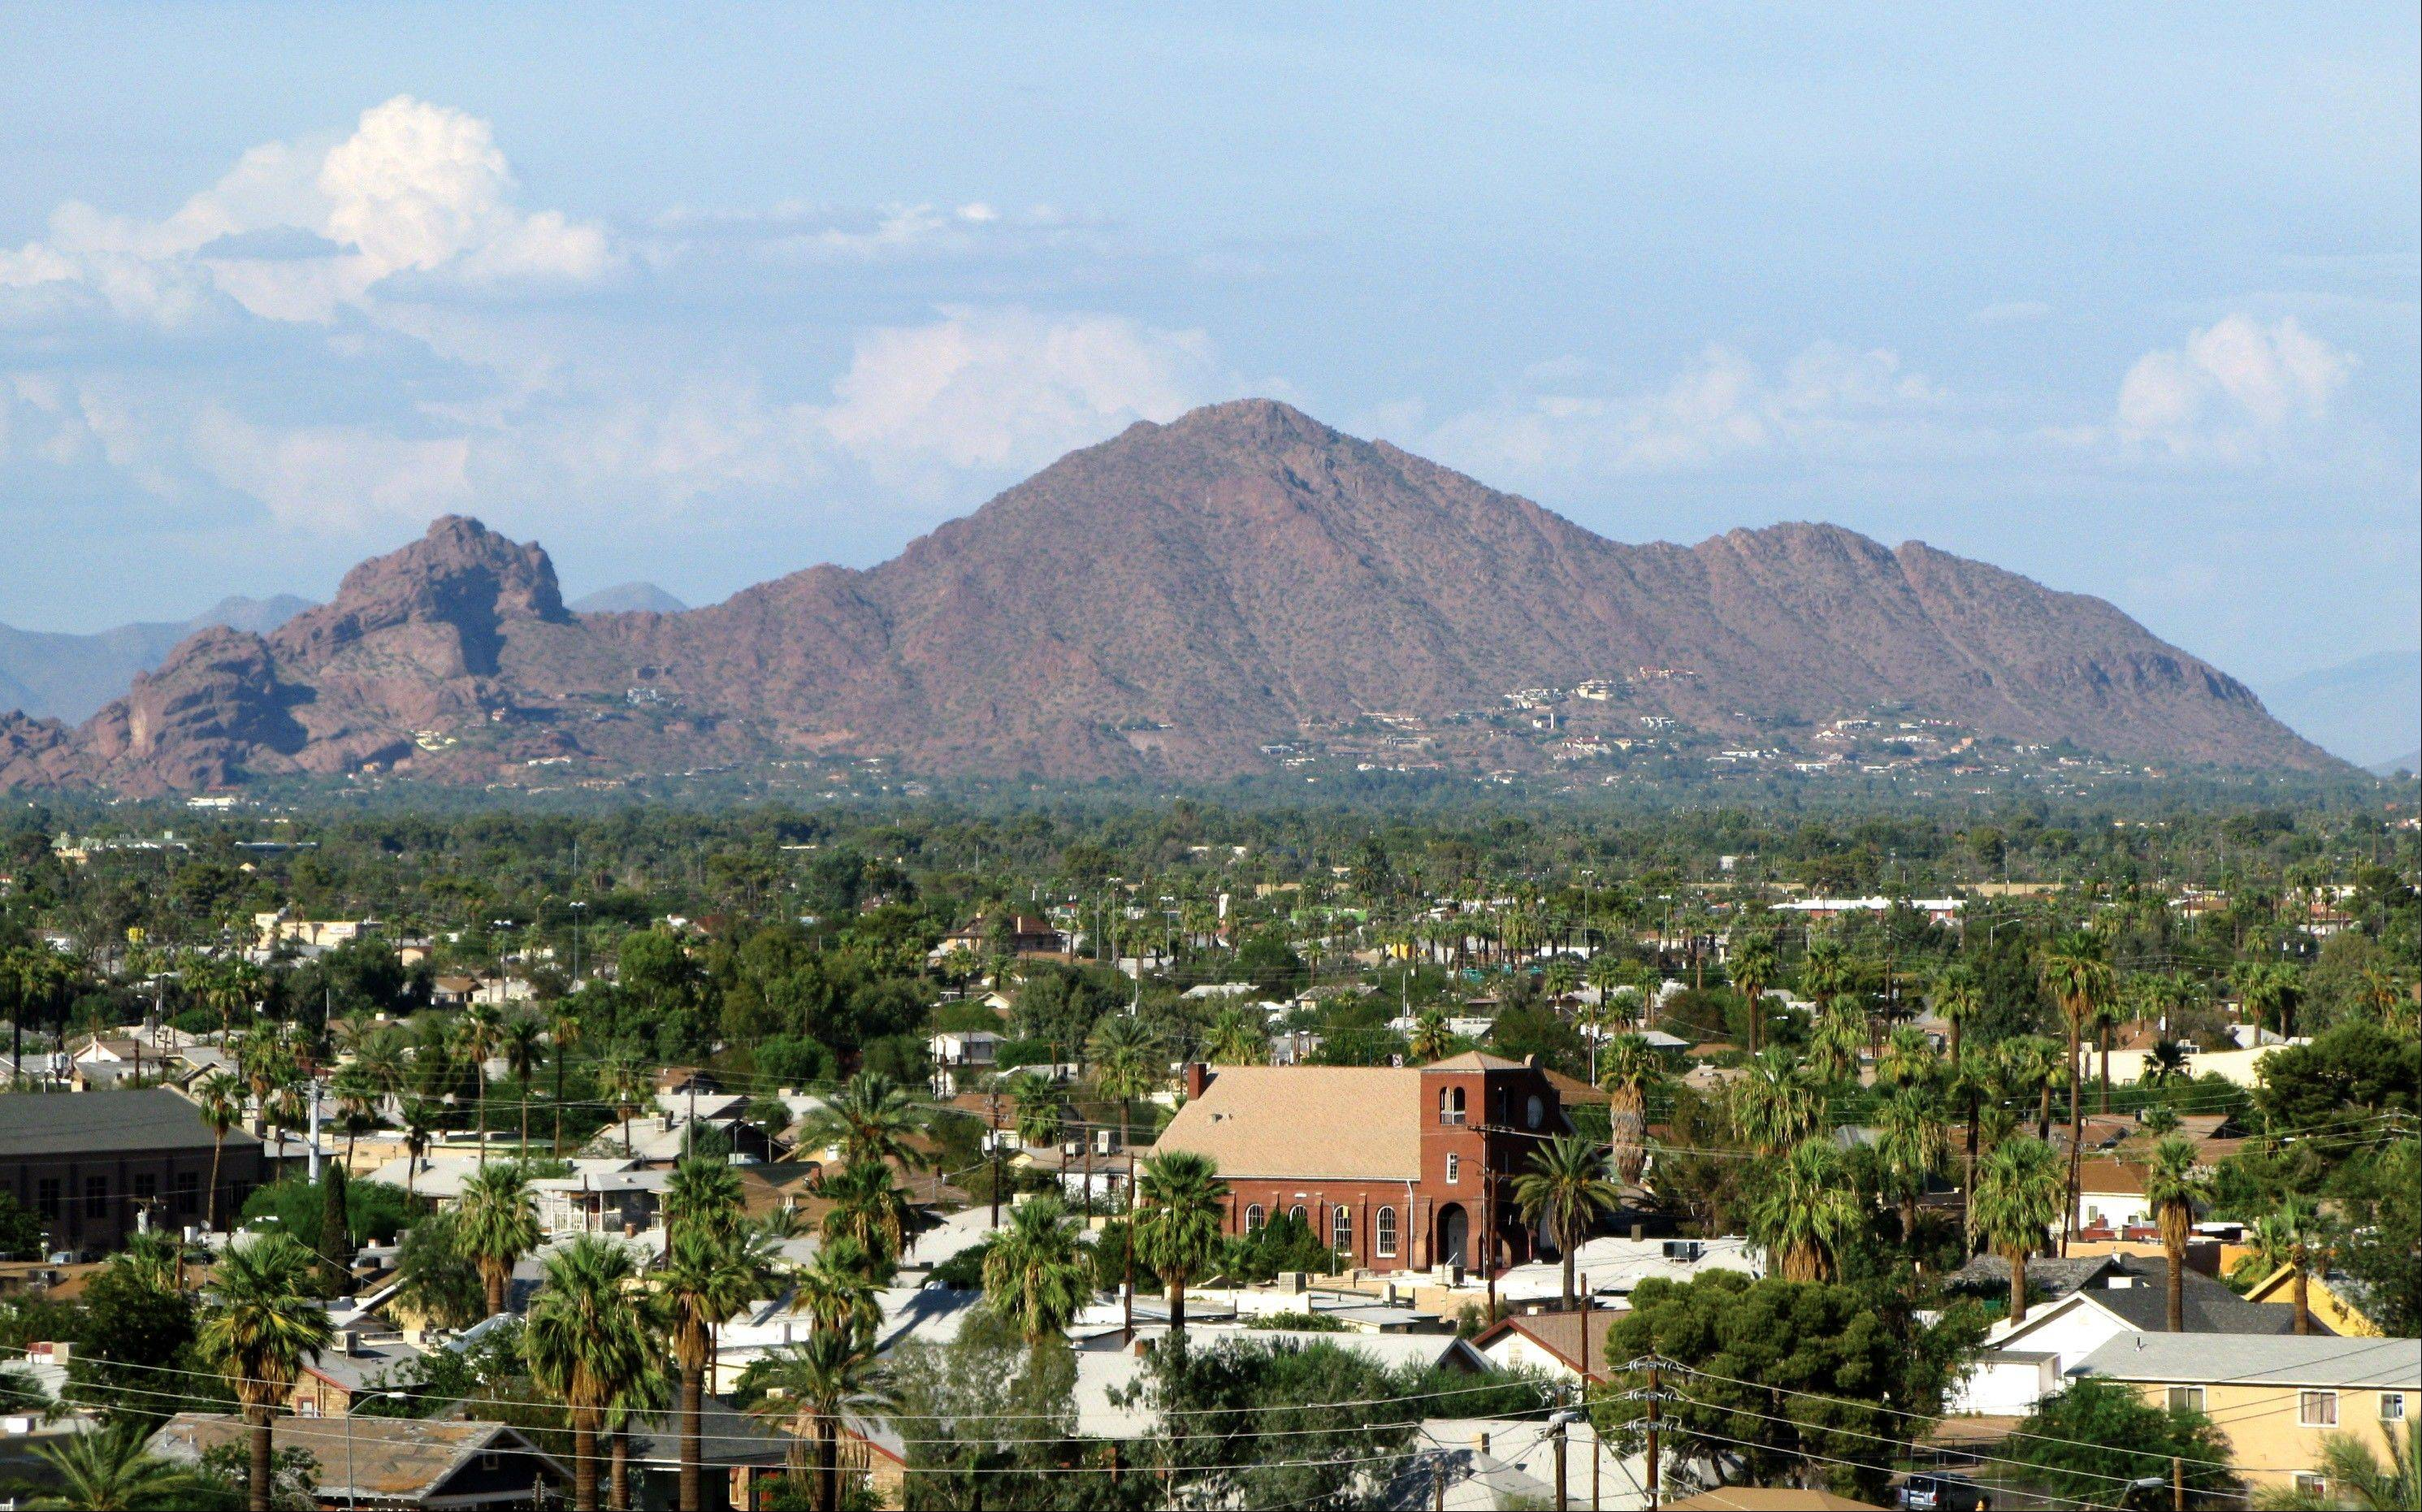 Camelback Mountain is one of the most popular landmarks, rising 2,704 feet above sea level.